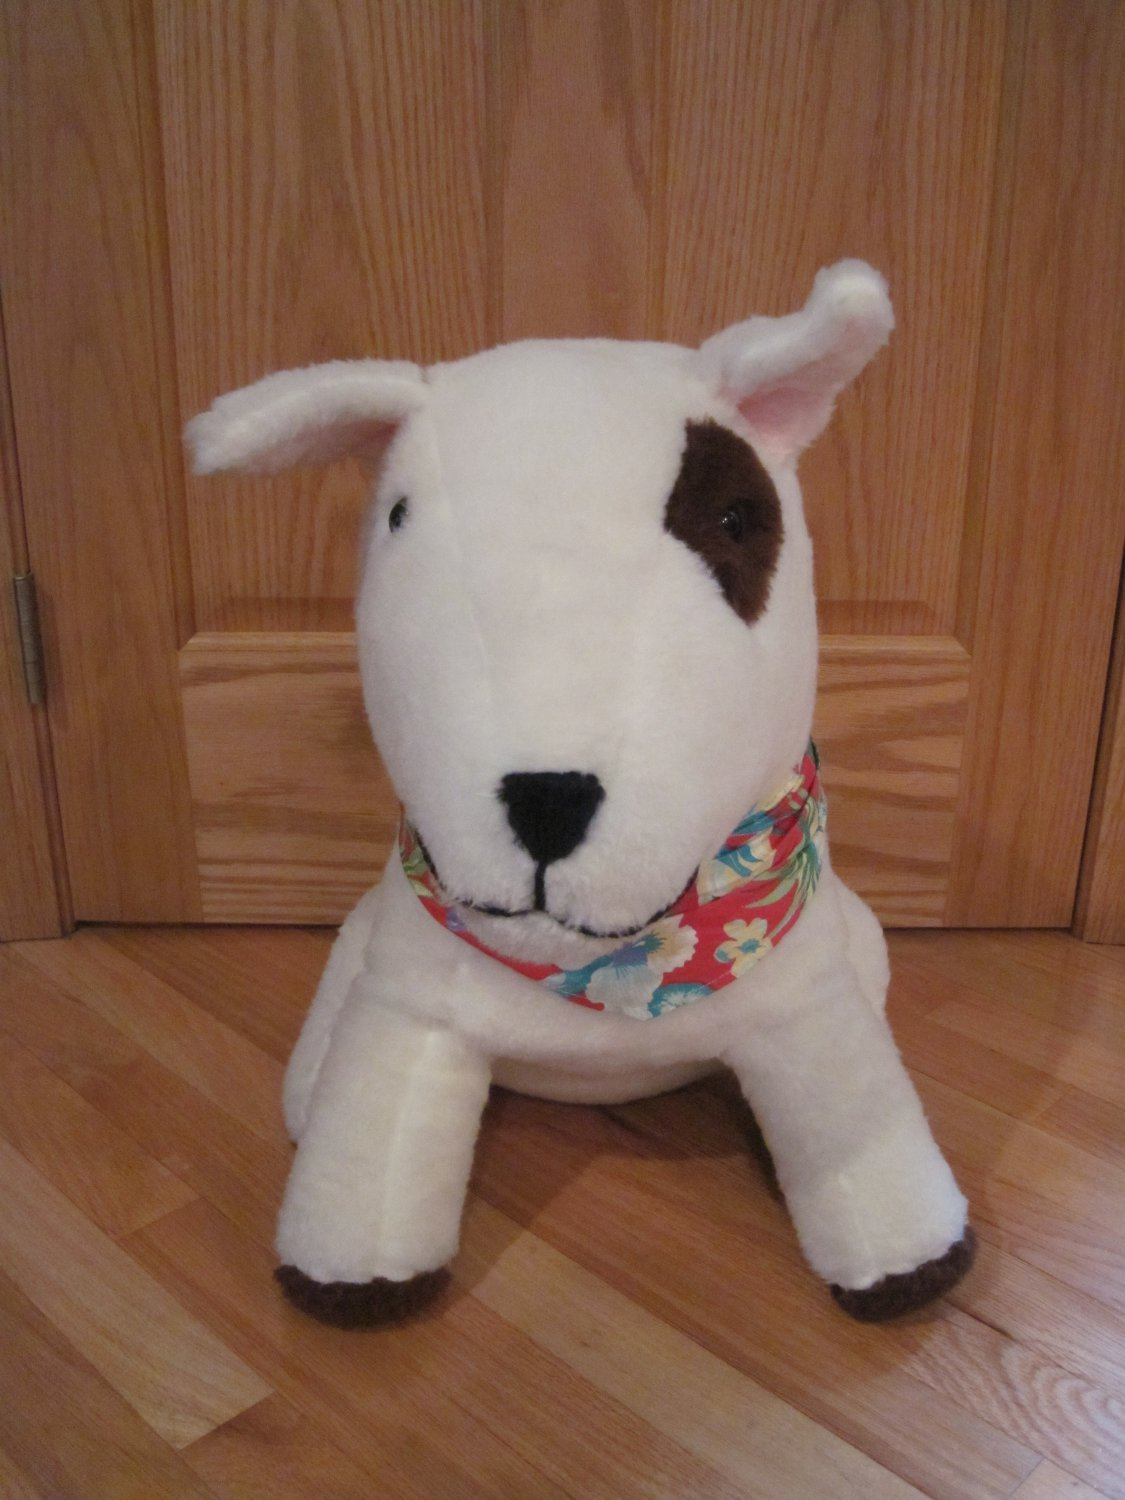 Vintage 80s Bud Light Spuds Mackenzie 23 Inch Stuffed Bull Terrier Puppy Dog Beer Mascot